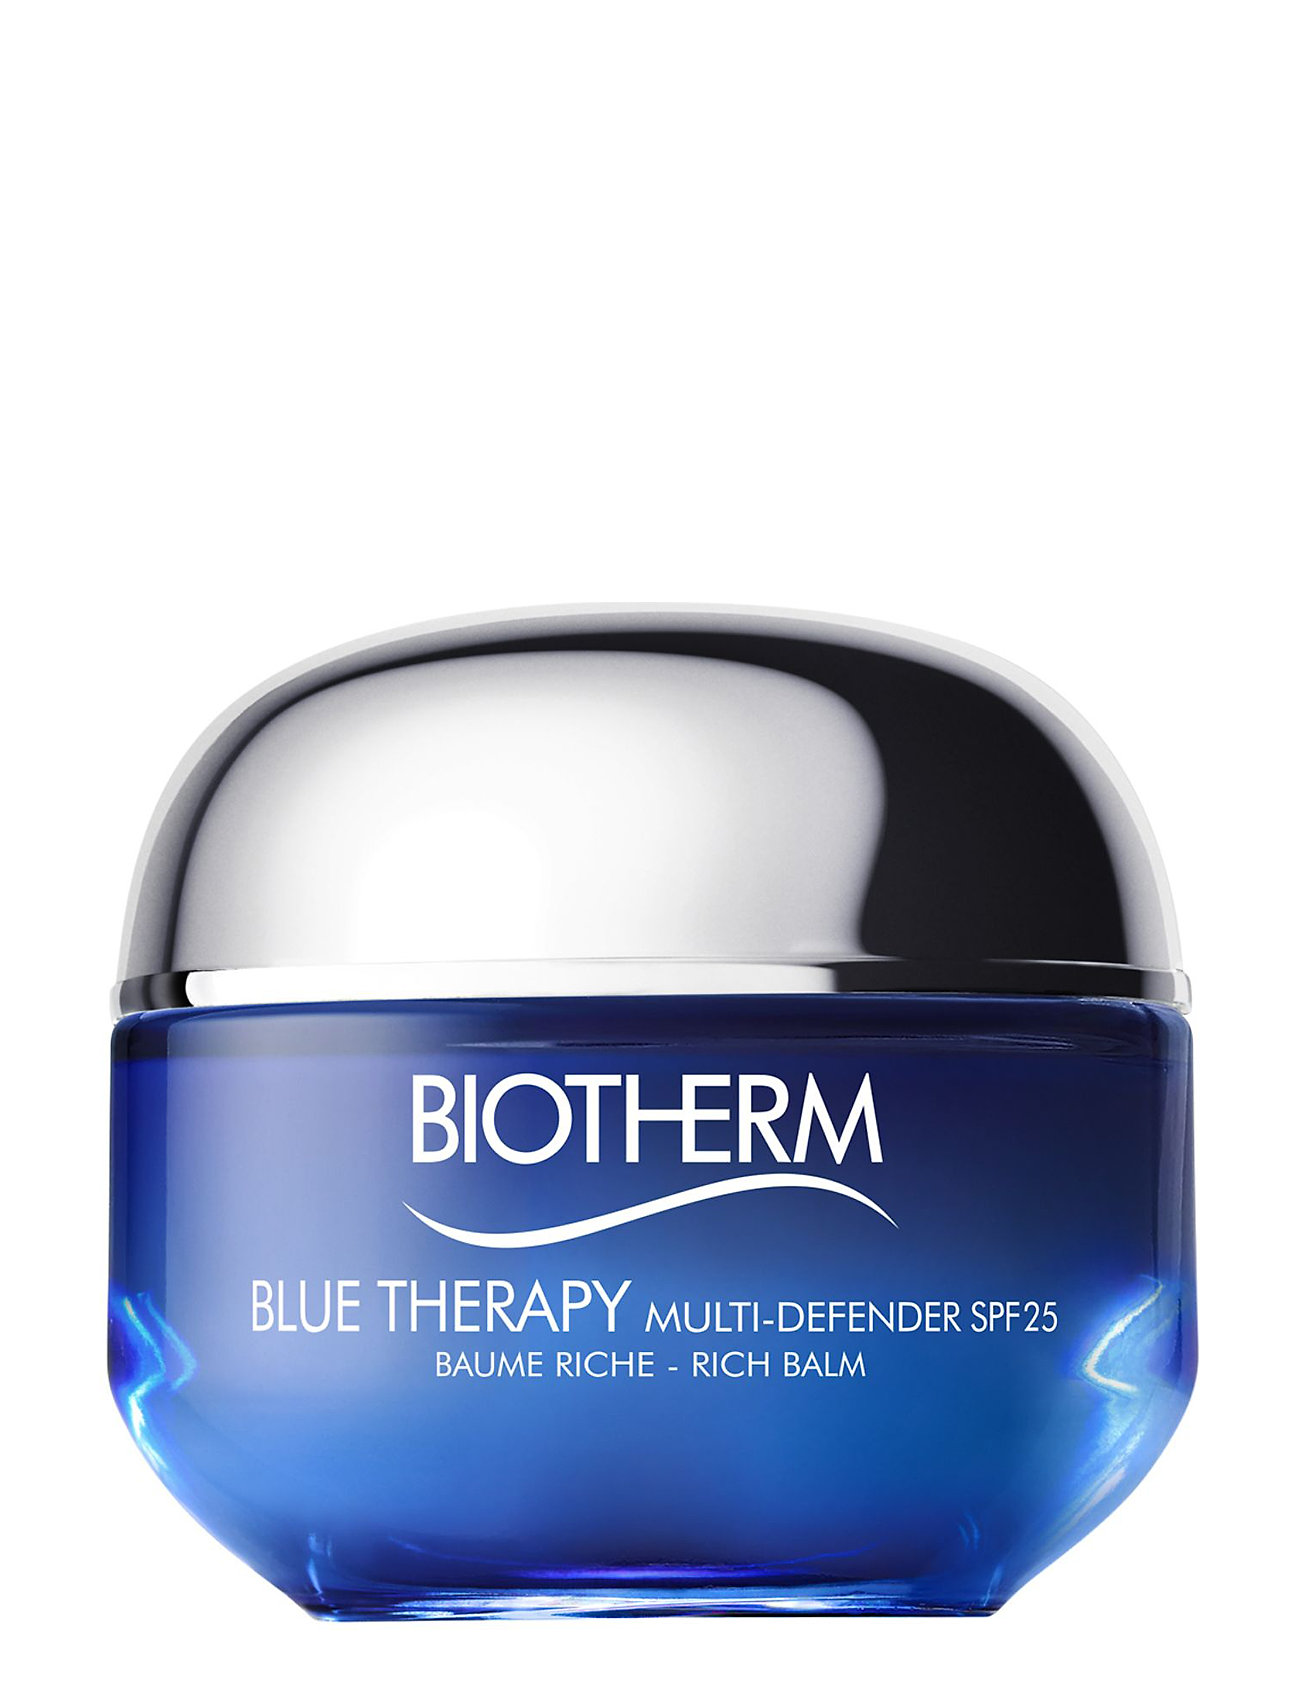 biotherm – Blue therapy multi-defender cream spf25 - dry skin 50 ml. fra boozt.com dk